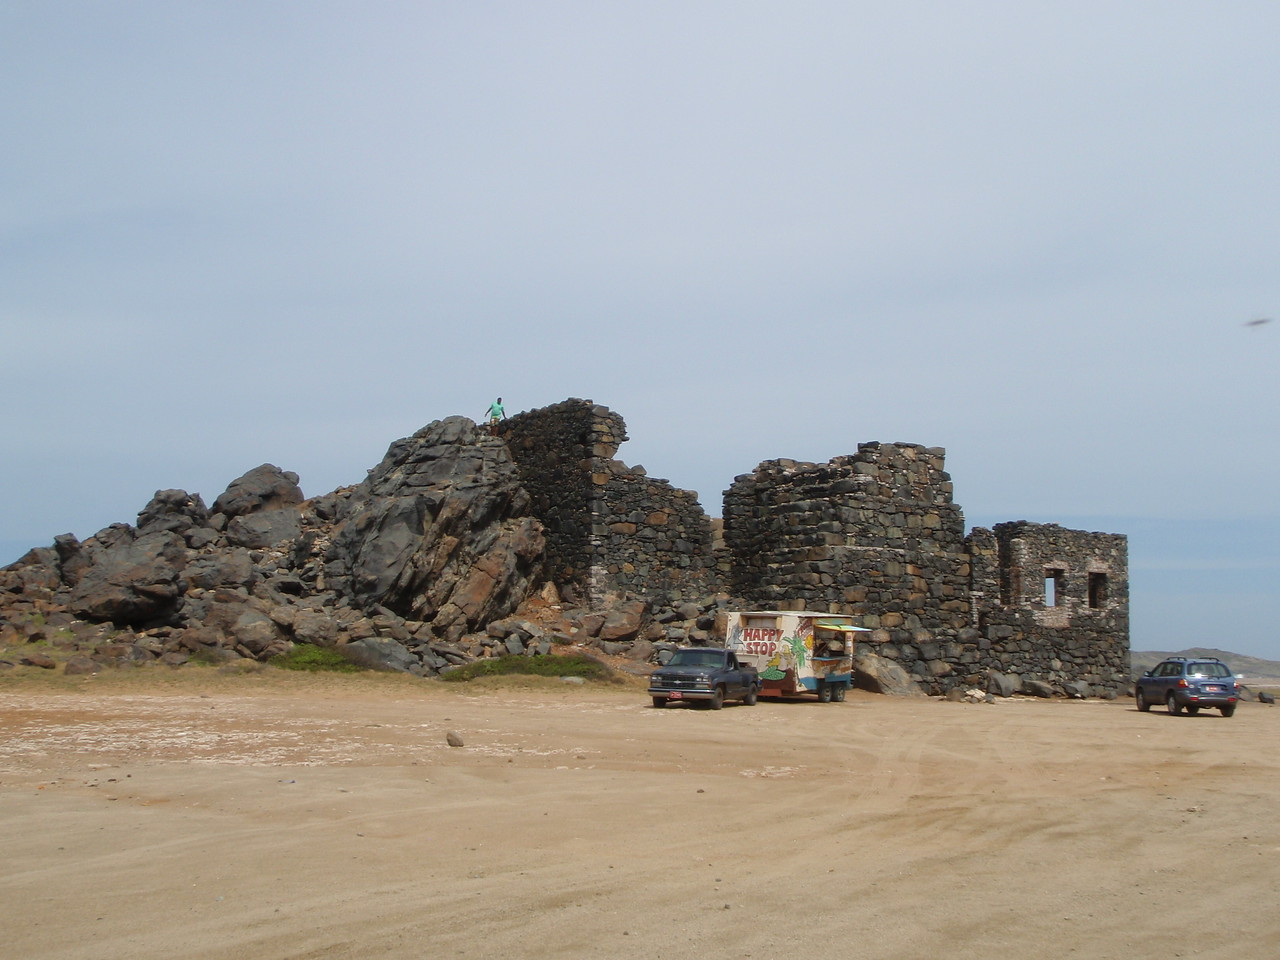 We drove by the ruins of the Bushiribana Gold Mill.